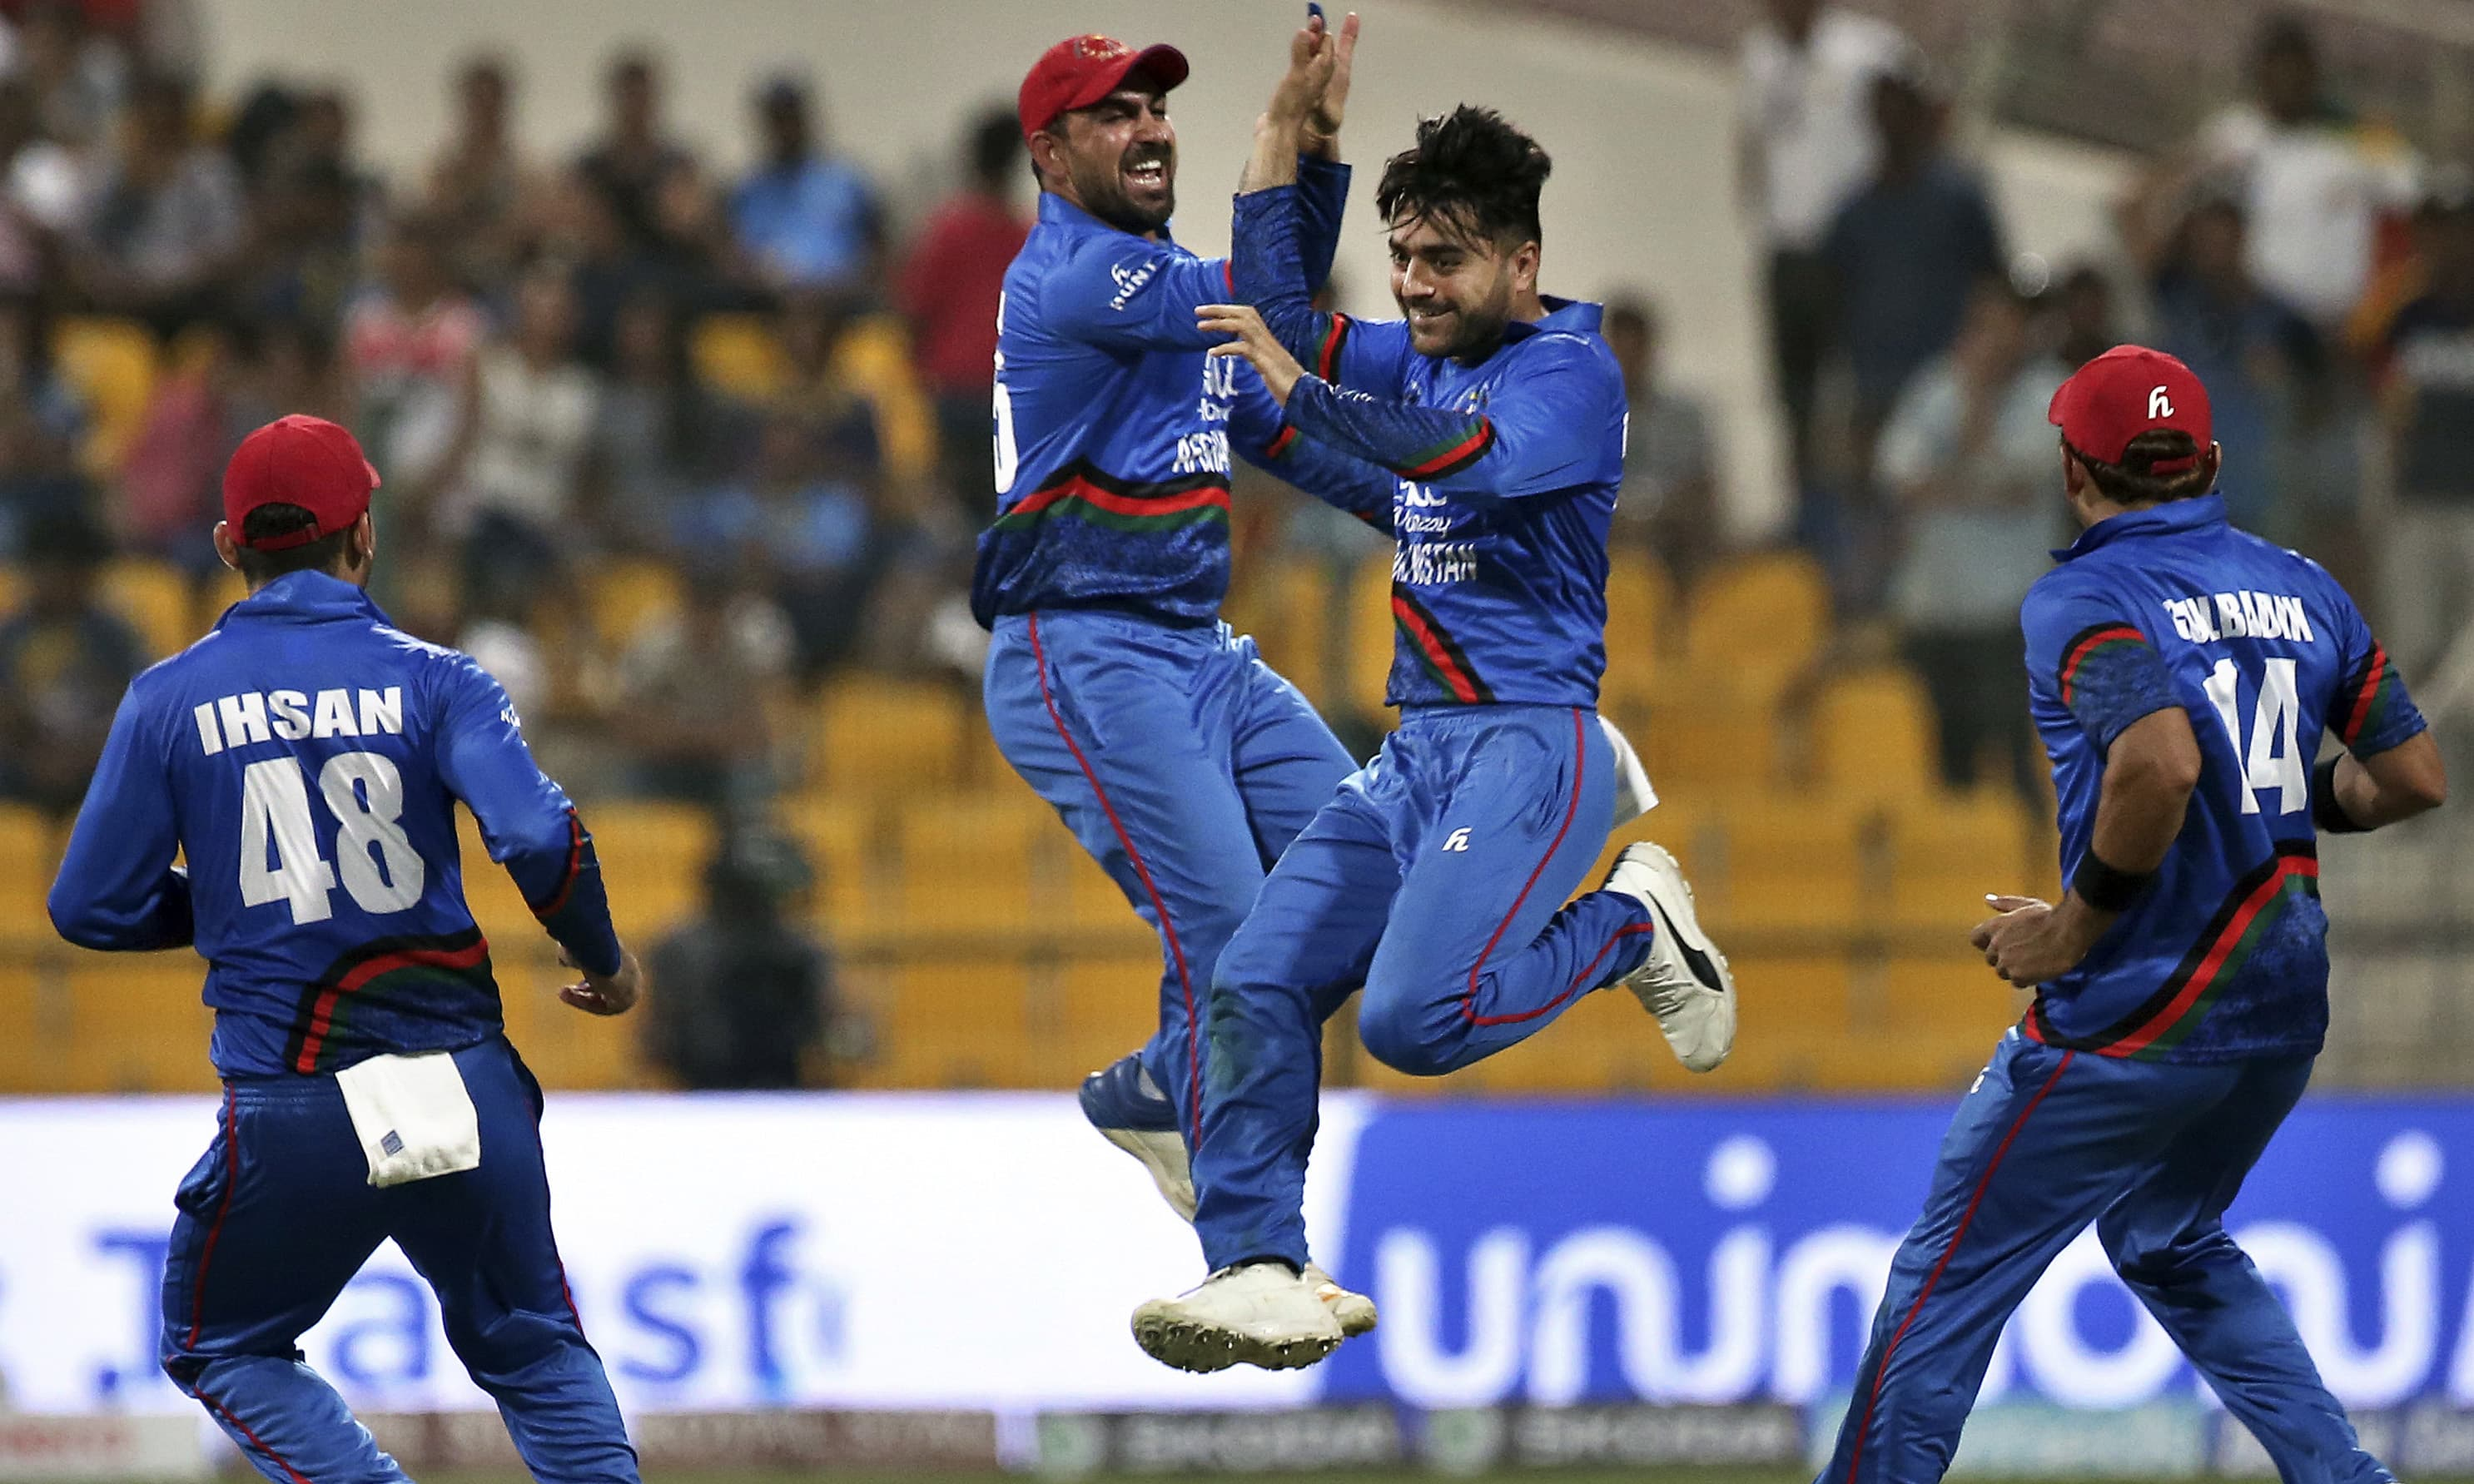 Rashid Khan was one of the stars for Afghanistan in Asia Cup. — File